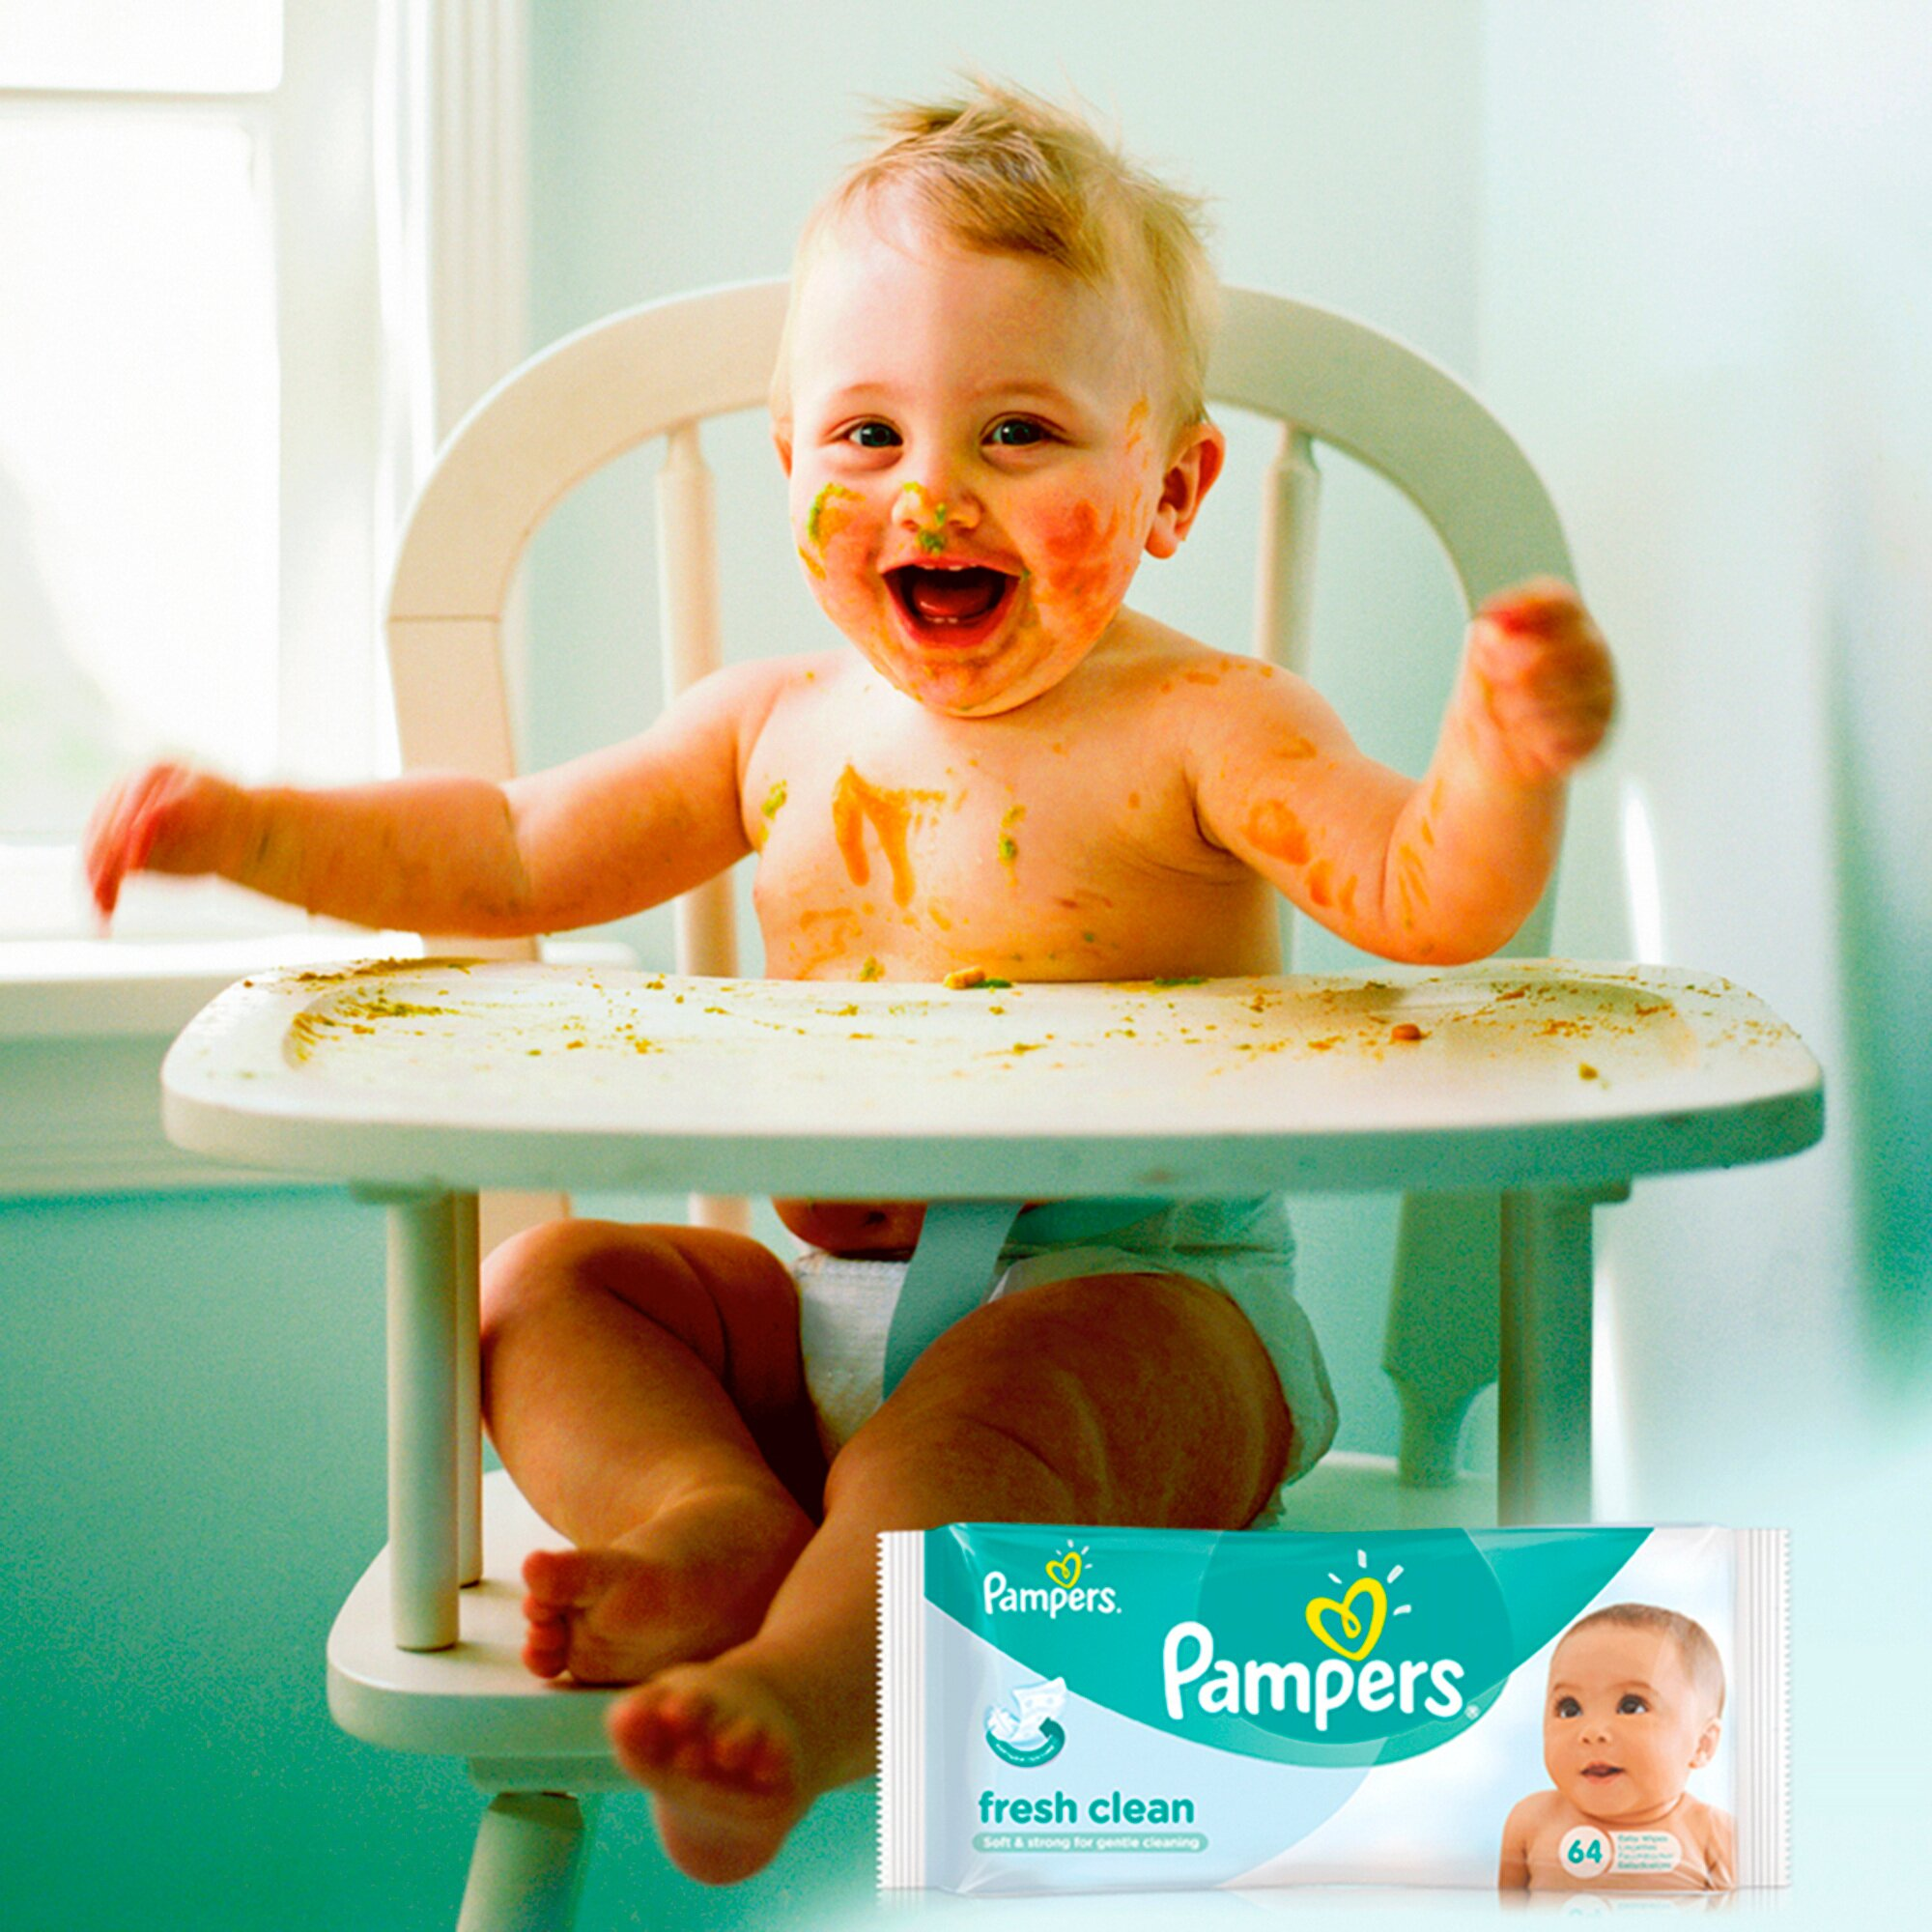 pampers-feuchttucher-fresh-clean-3er-pack-192-st-